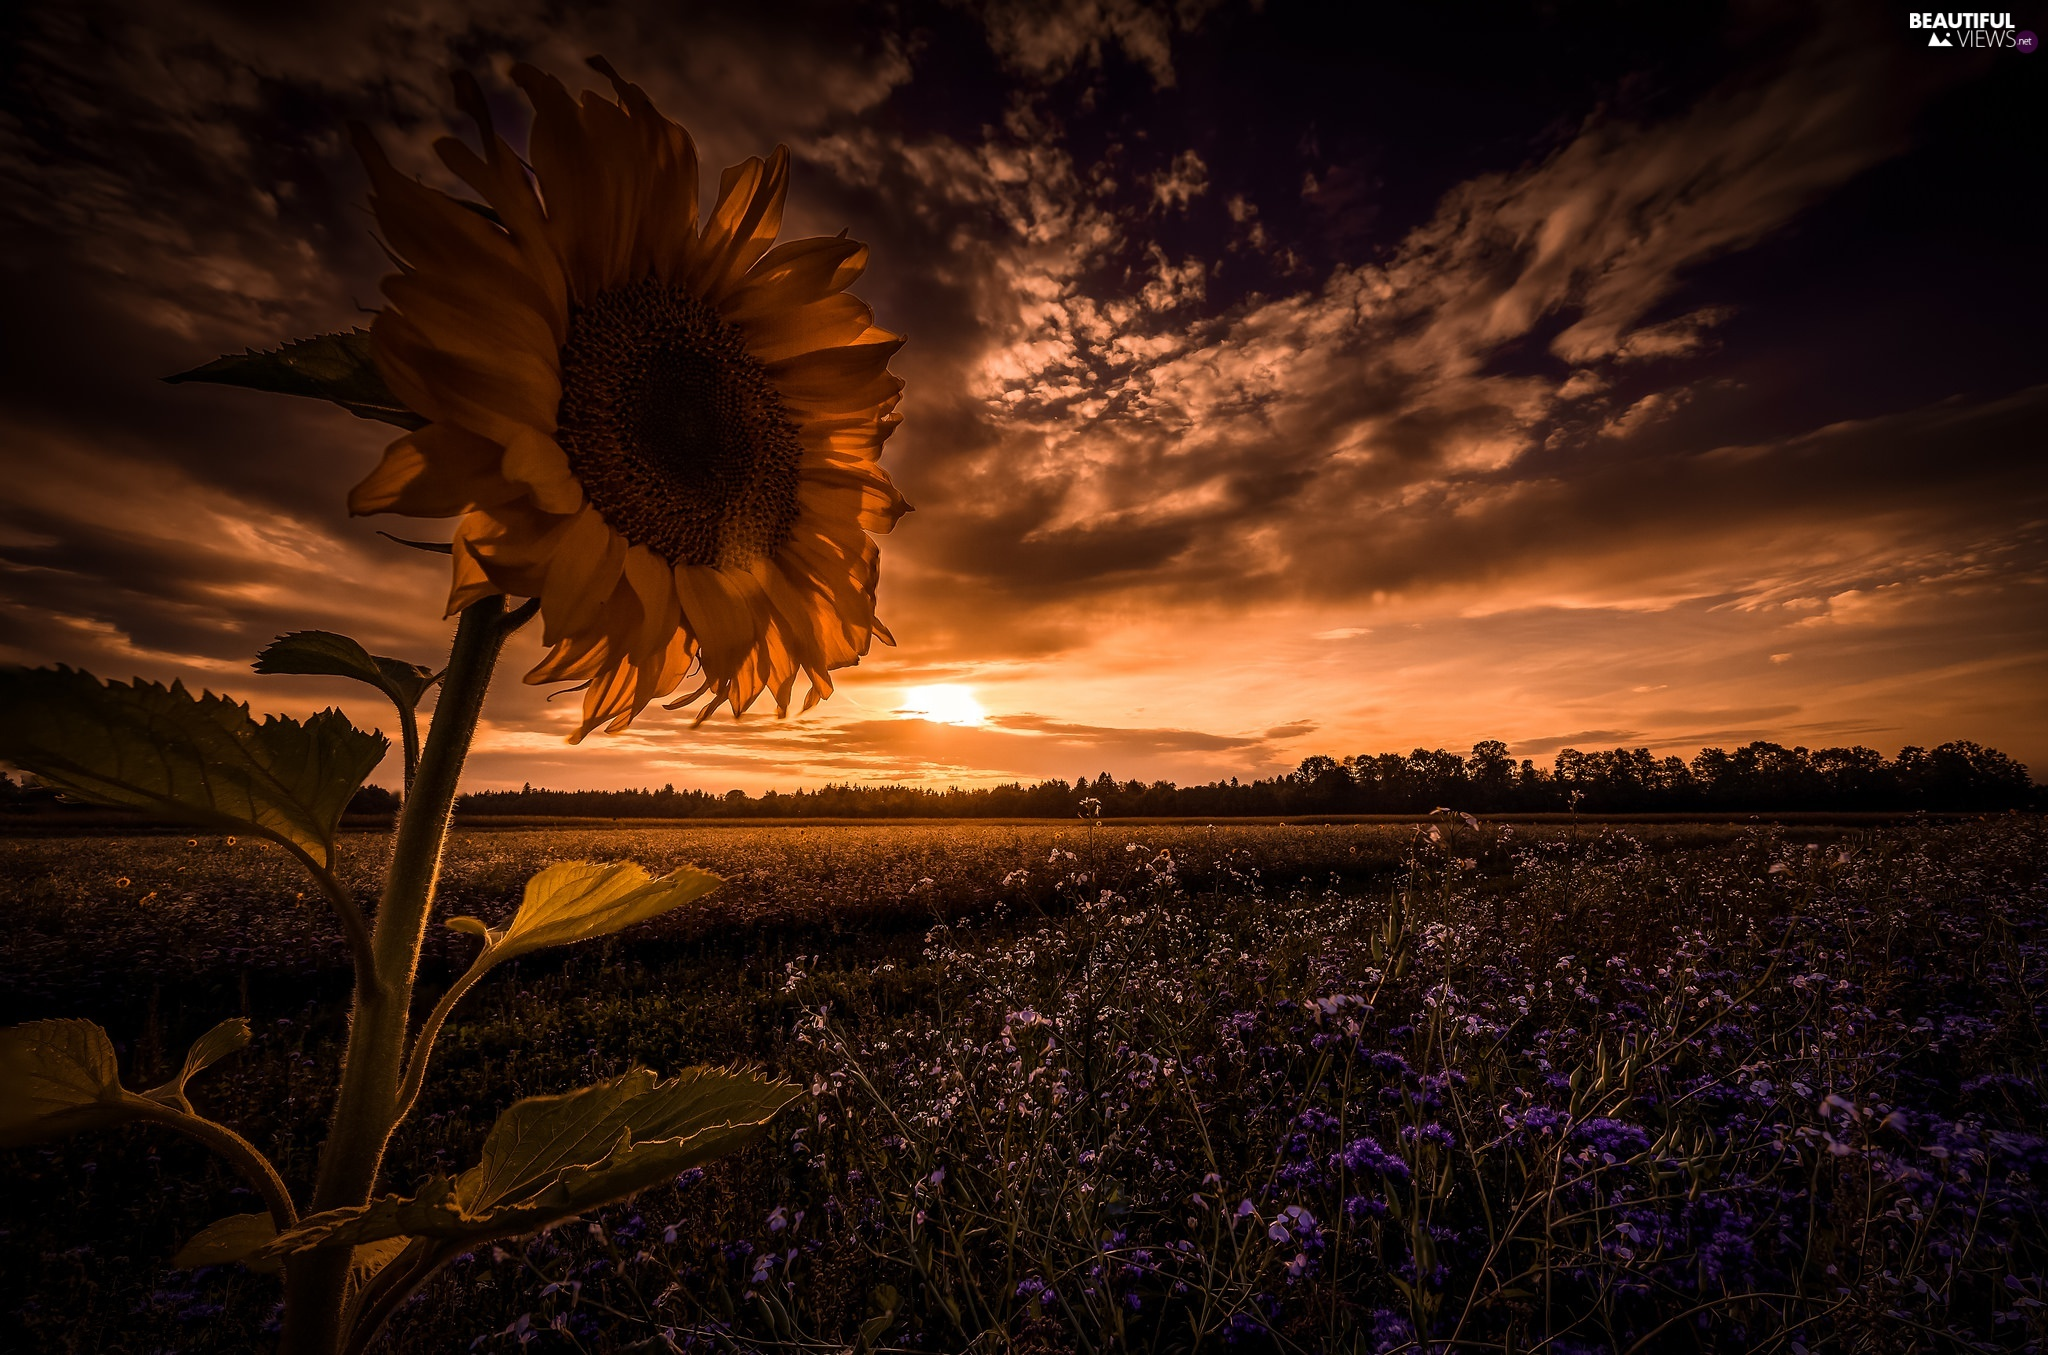 Sky, Clouds, Sunflower, Field